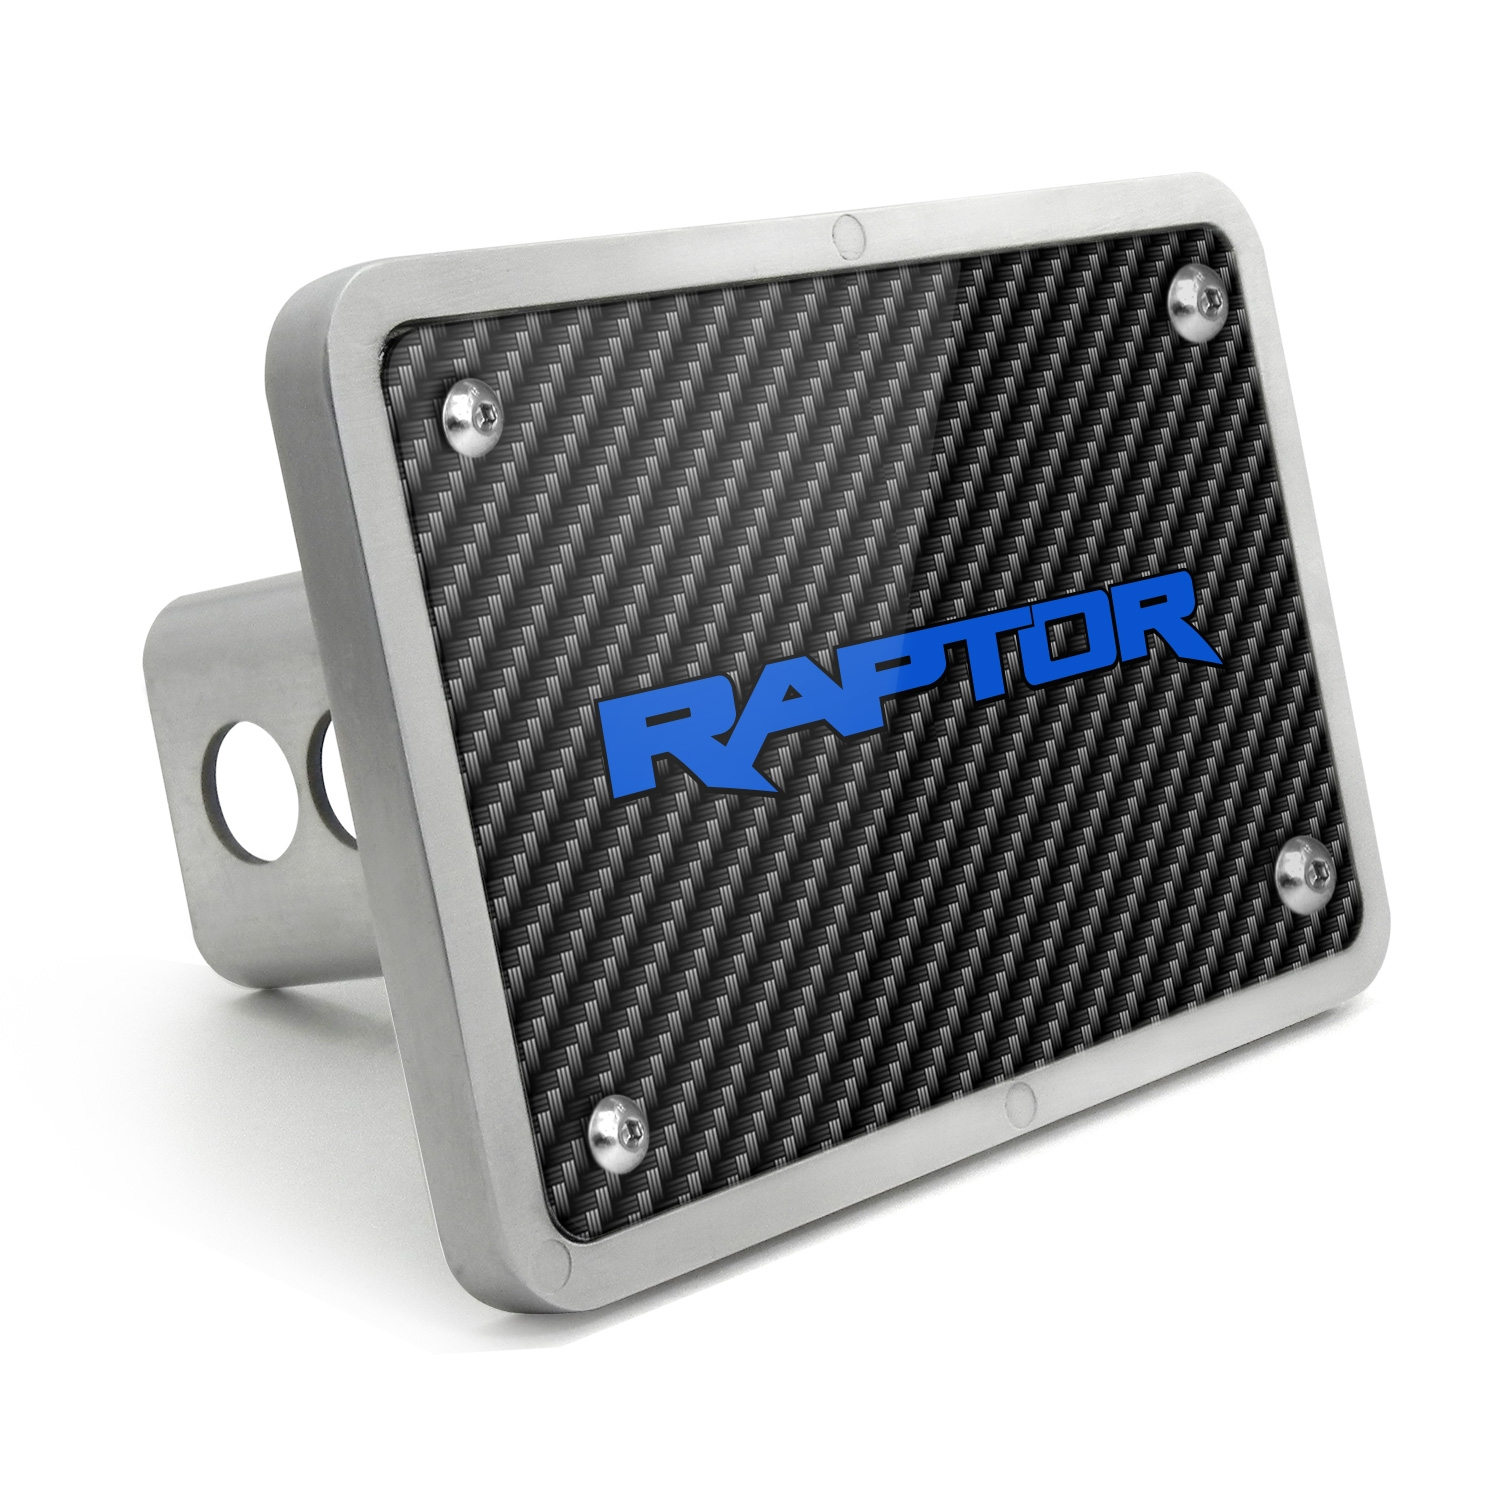 Ford Raptor 2017 to 2018 in Blue Black Carbon Fiber Texture Plate Billet Aluminum 2 inch Tow Hitch Cover